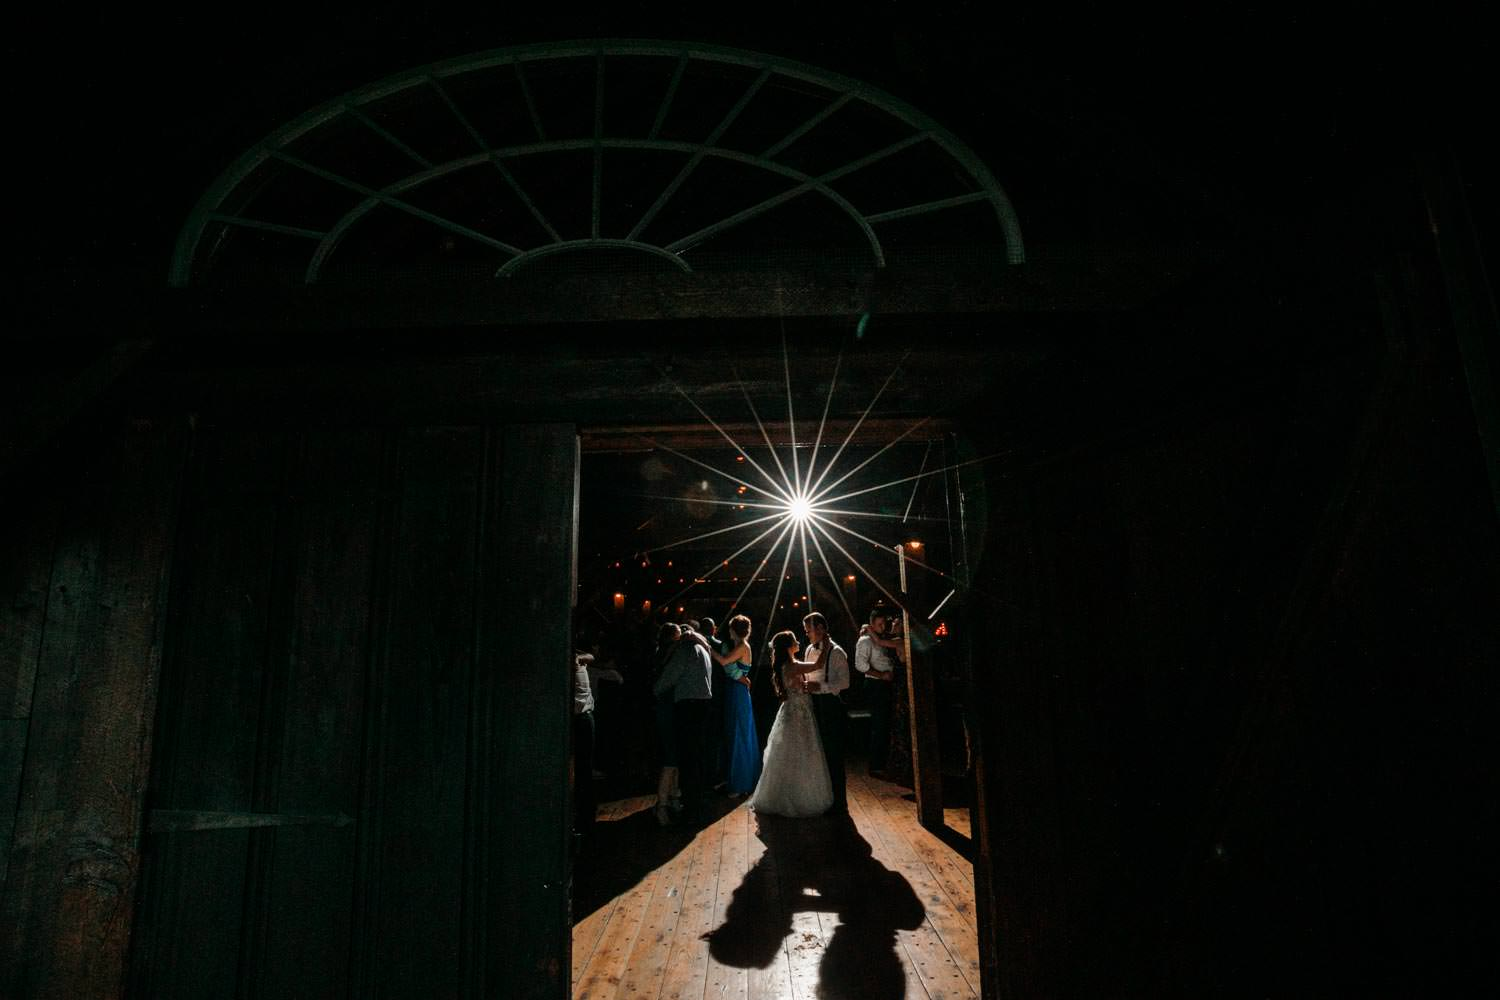 bride and groom dance at their riverside farm vermont wedding reception, photographer shoots them though barn door way with starburst flash in background